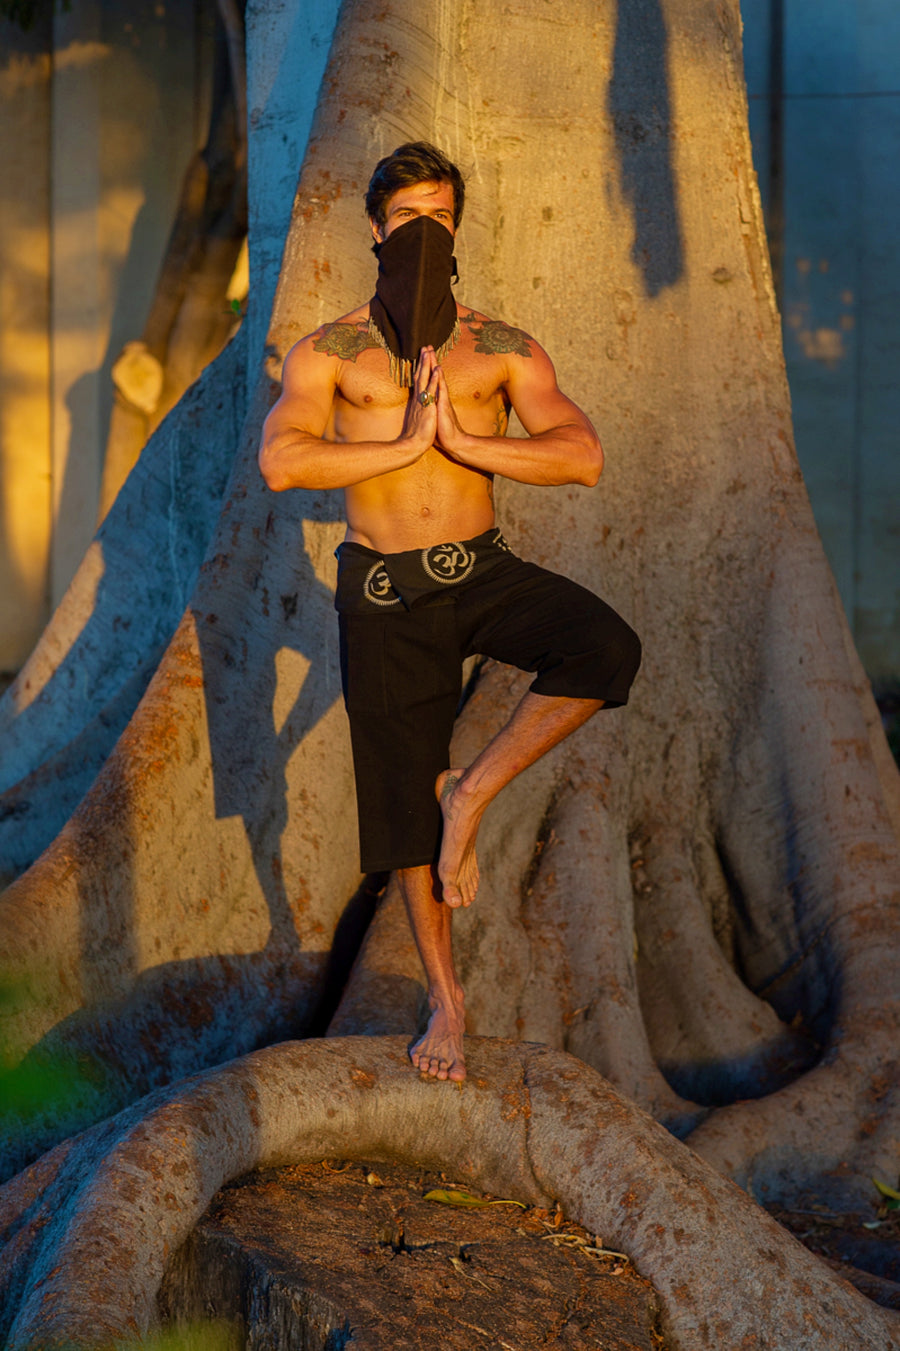 Om Fisherman Shorts in Black-The High Thai-The High Thai-Yoga Pants-Harem Pants-Hippie Clothing-San Diego